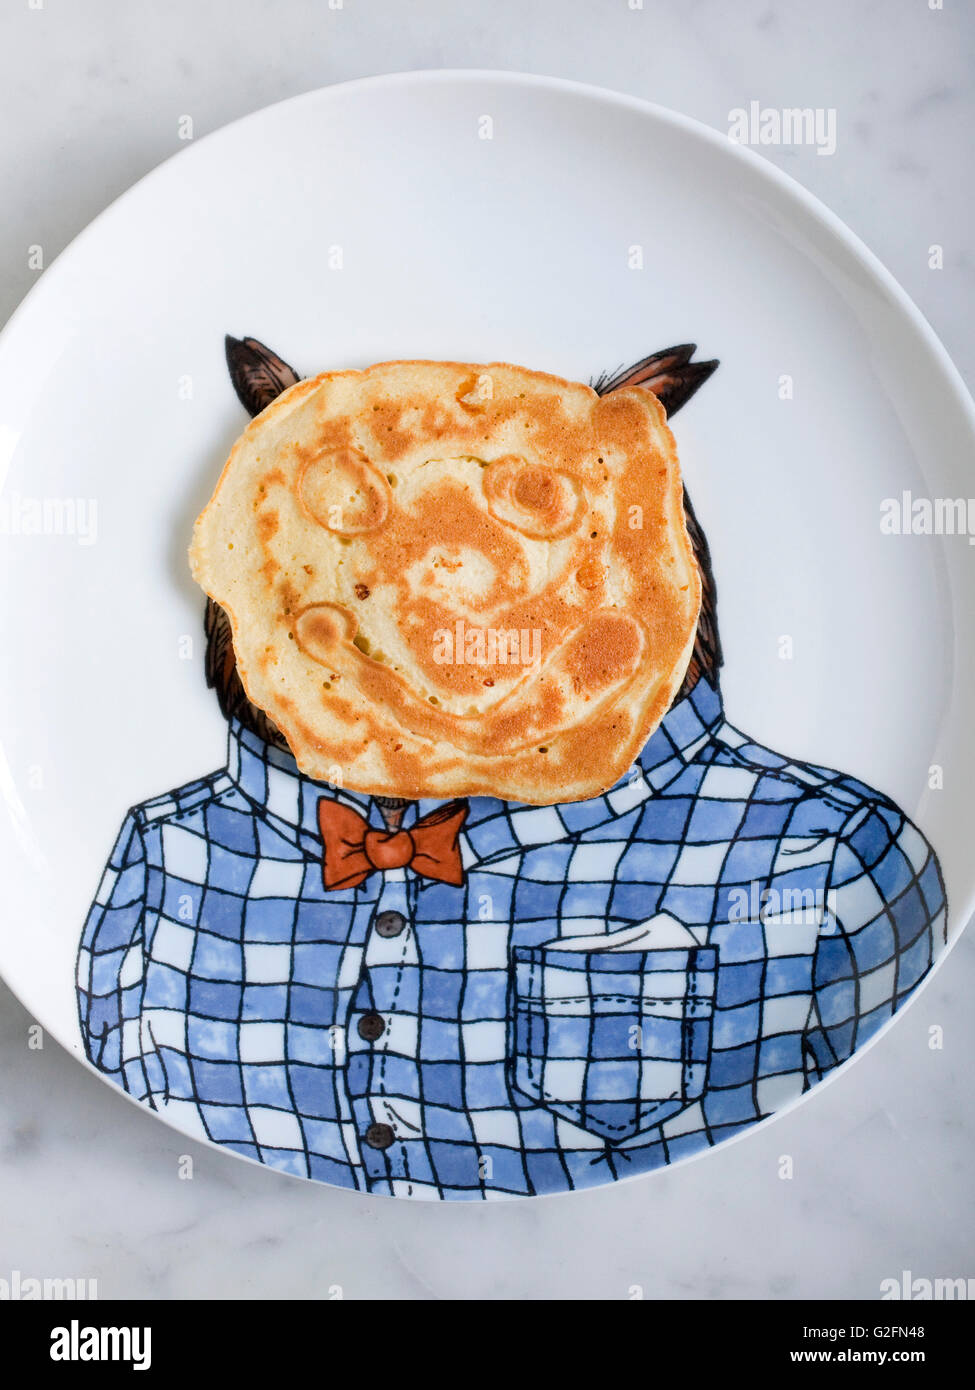 Pancake with face on owl plate - Stock Image